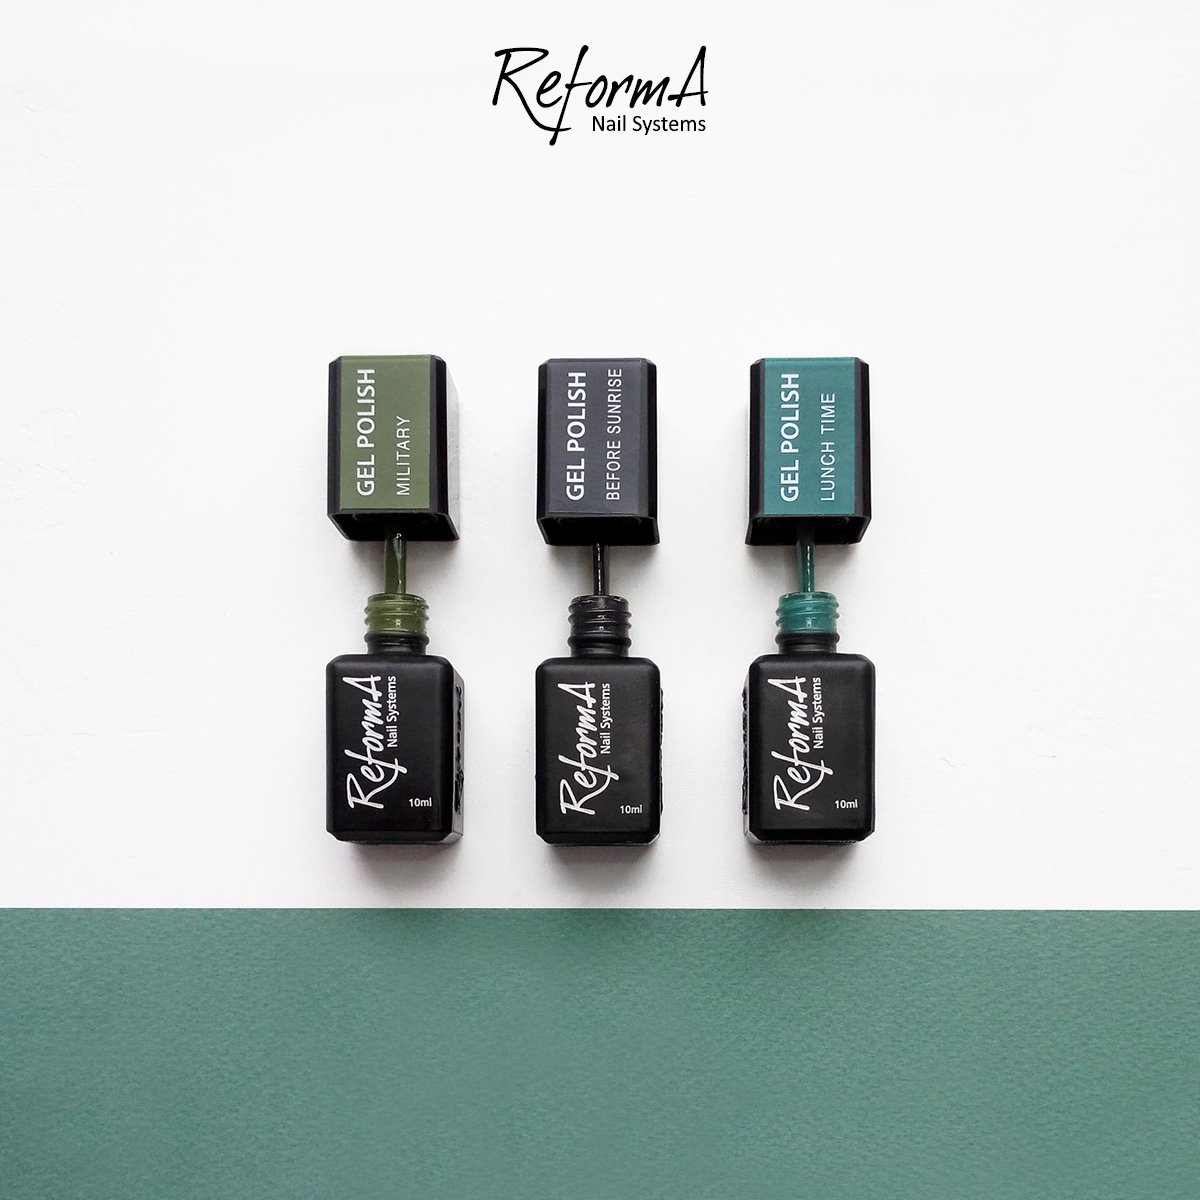 Fall shades by #ReformA  . #reformanails #reformnails #reformagelpolish #gelpolish #nailpolish #beautysupply #nails #nailsupplies #trendcolor<br>http://pic.twitter.com/NyeDRMFBWp